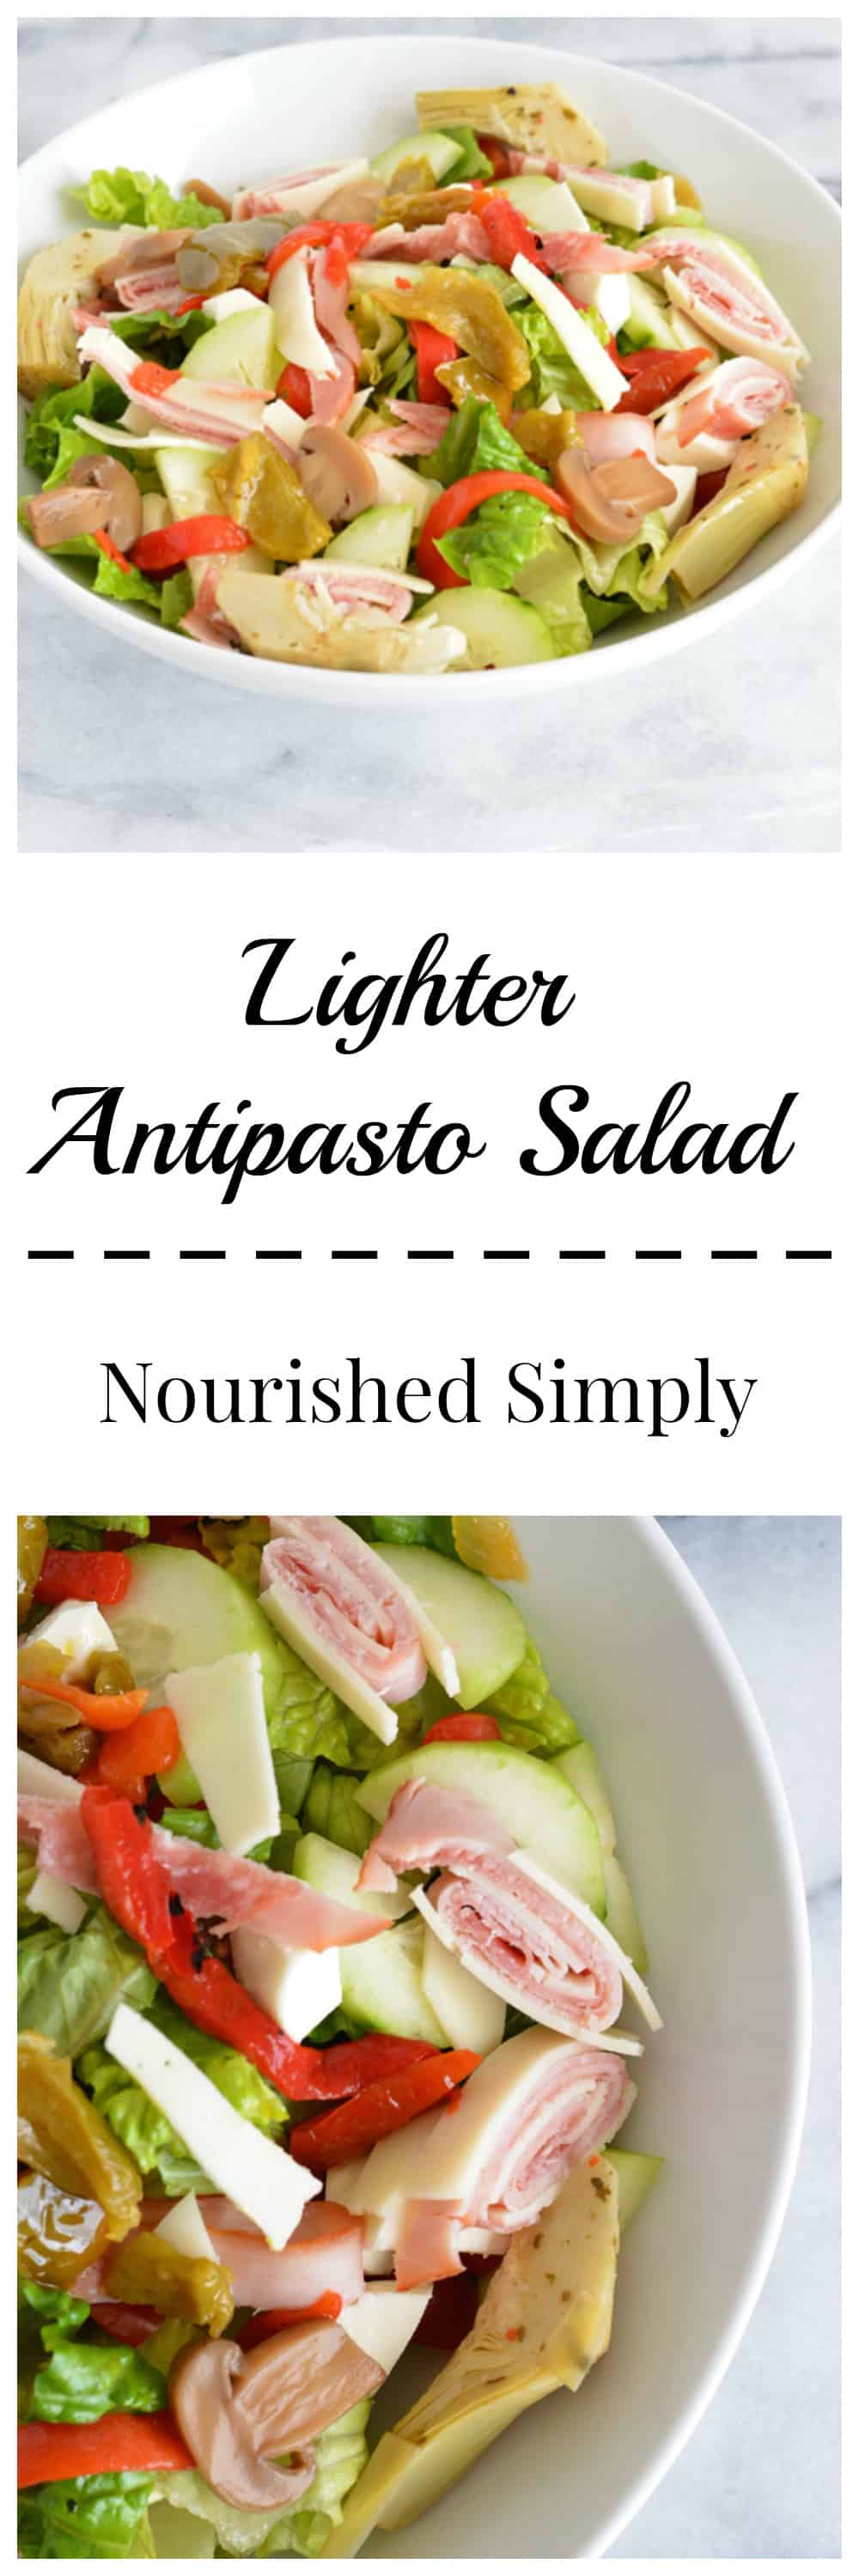 A lower calorie version of antipasto salad with the same great flavors.